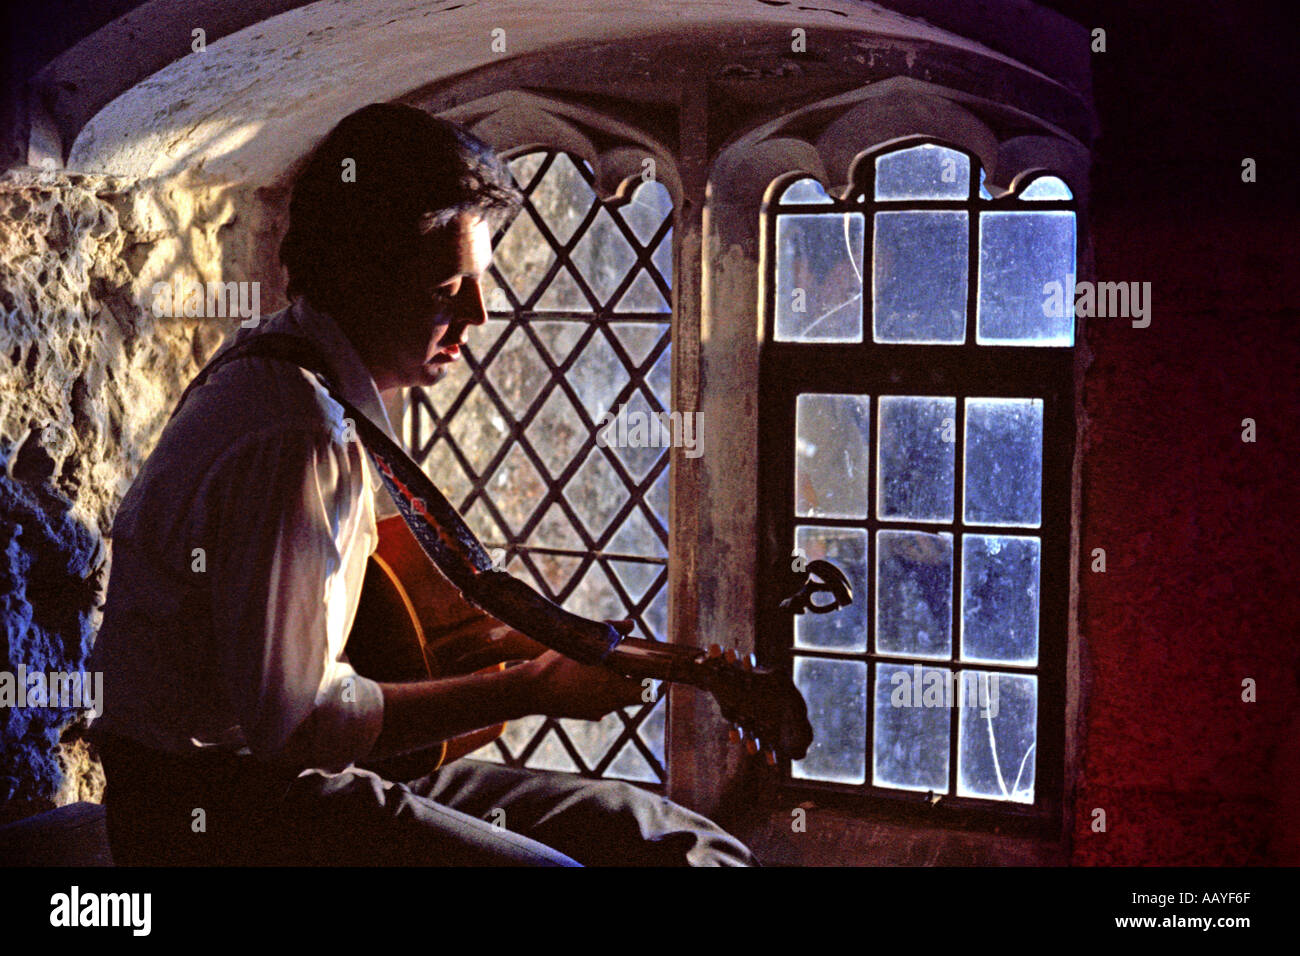 Paul McCartney seated in old castle window at night playing